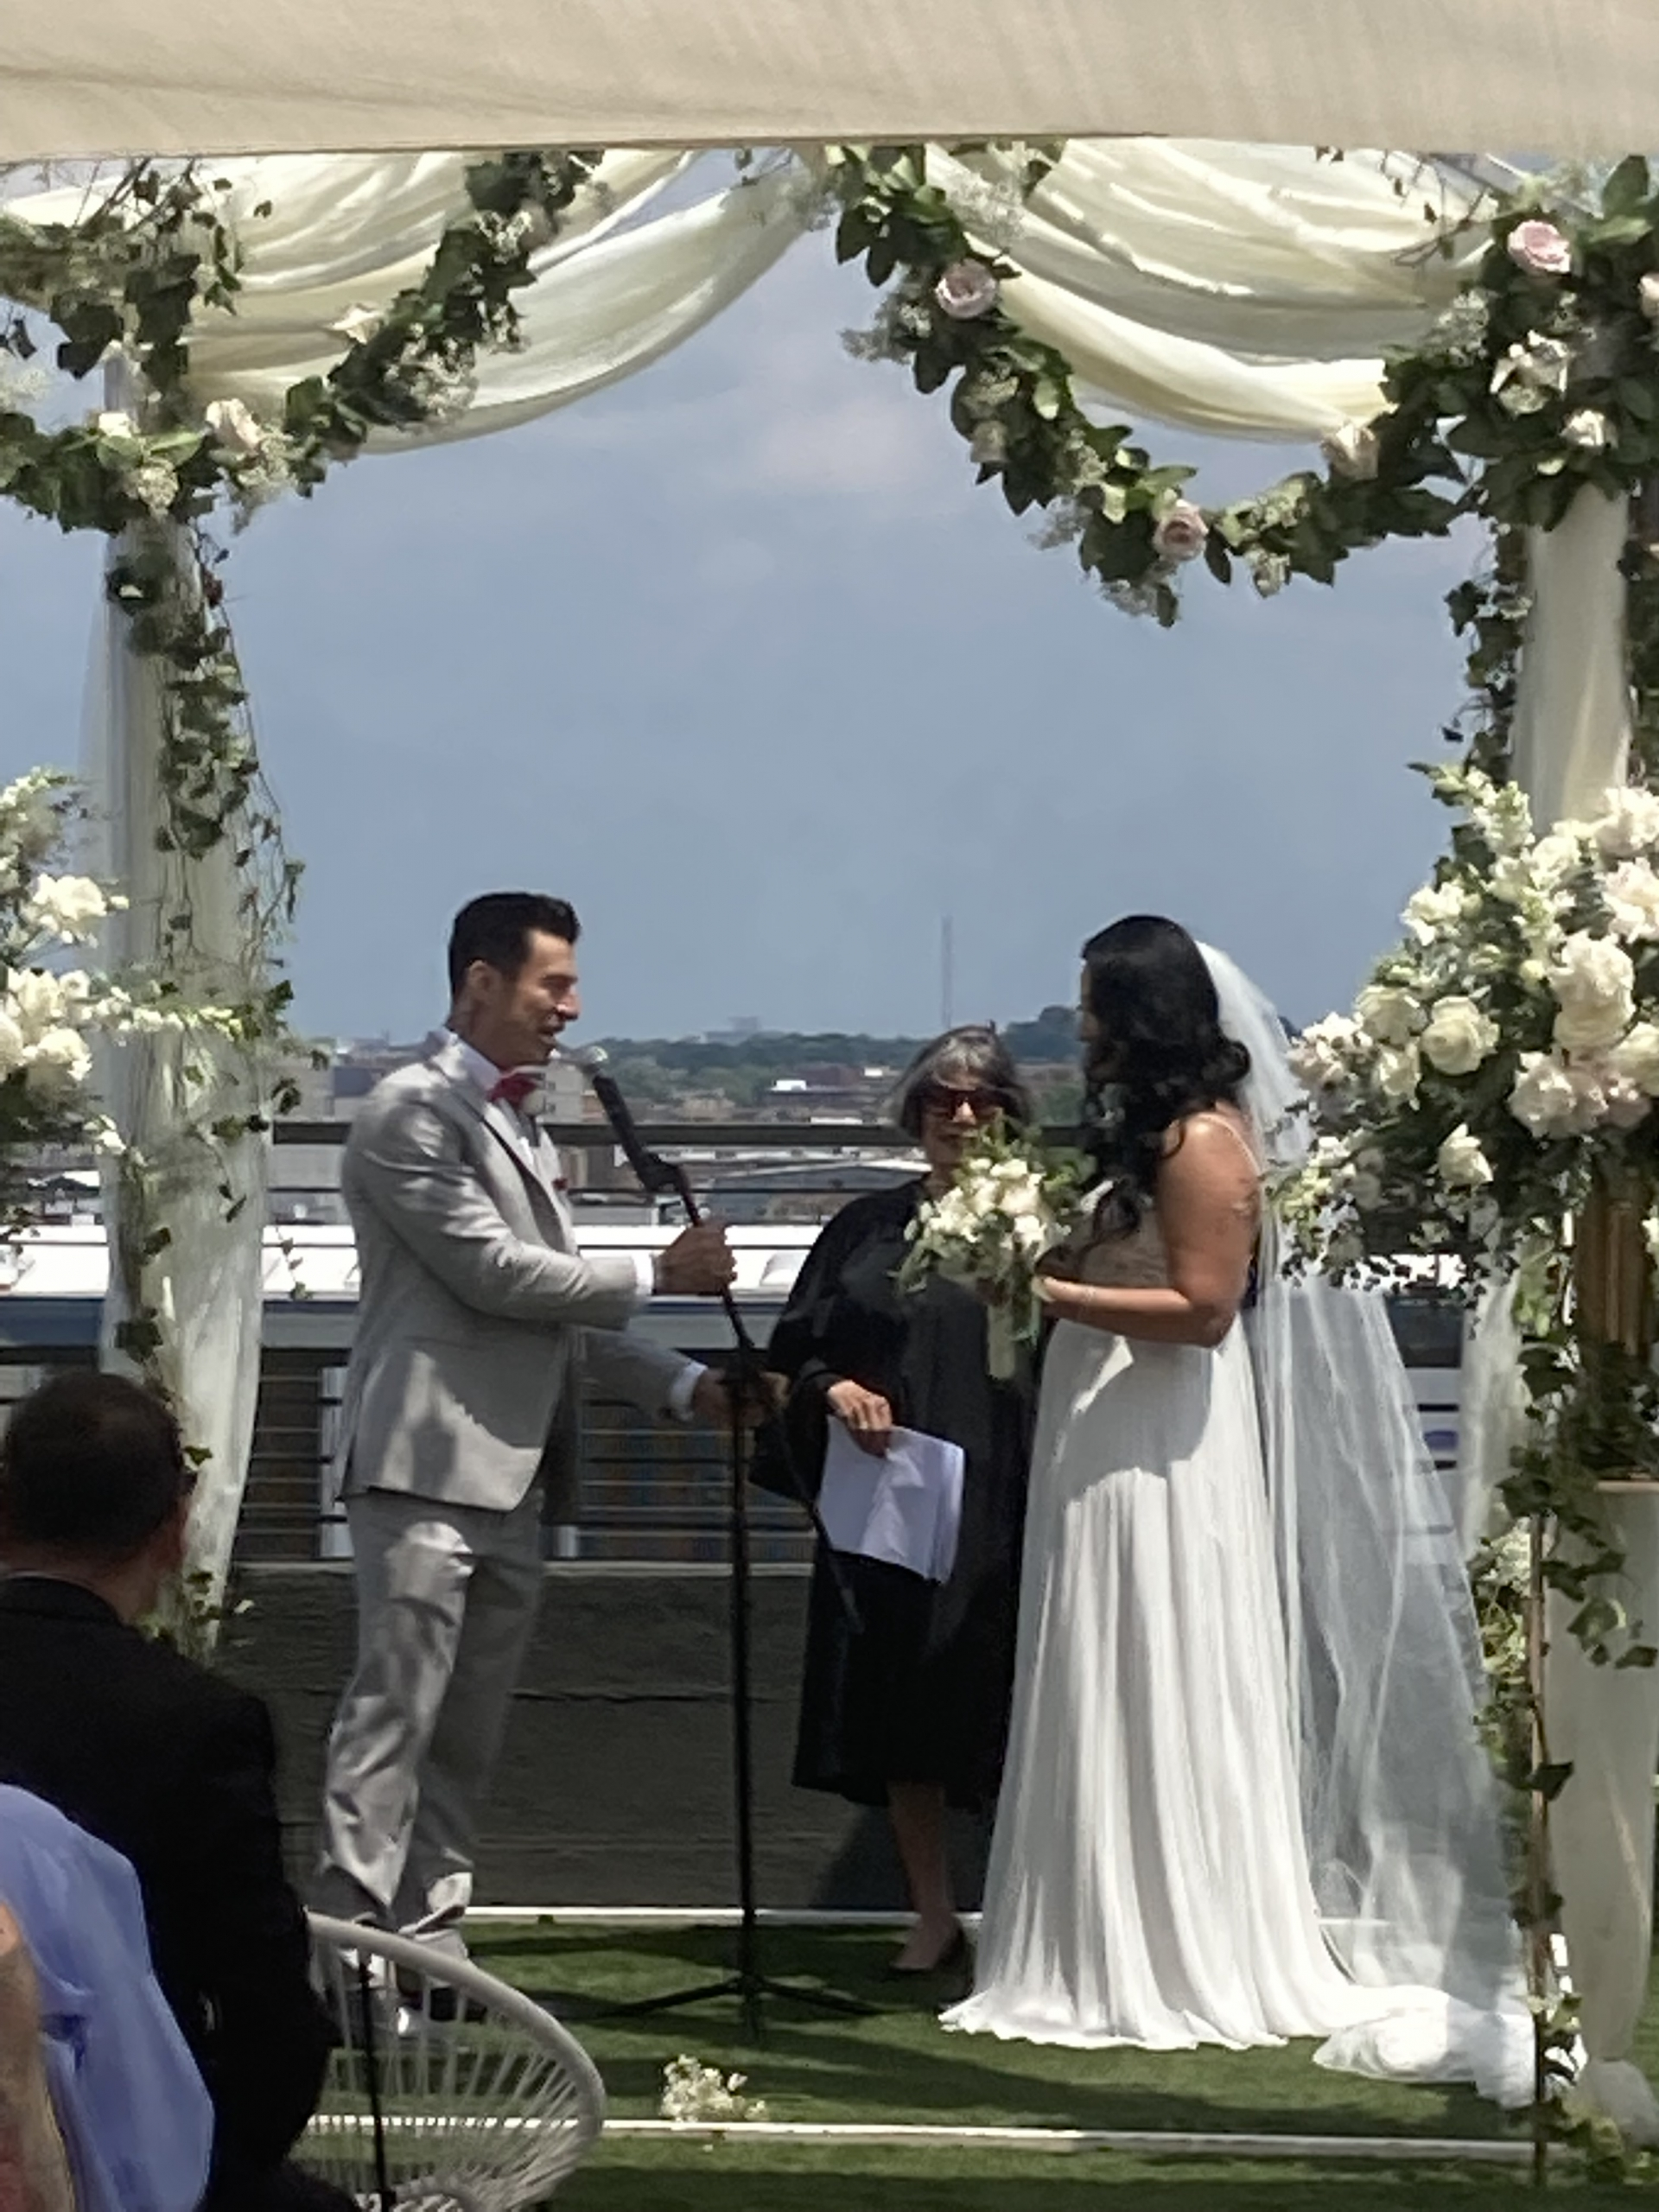 A happy couple reciting their vows outside